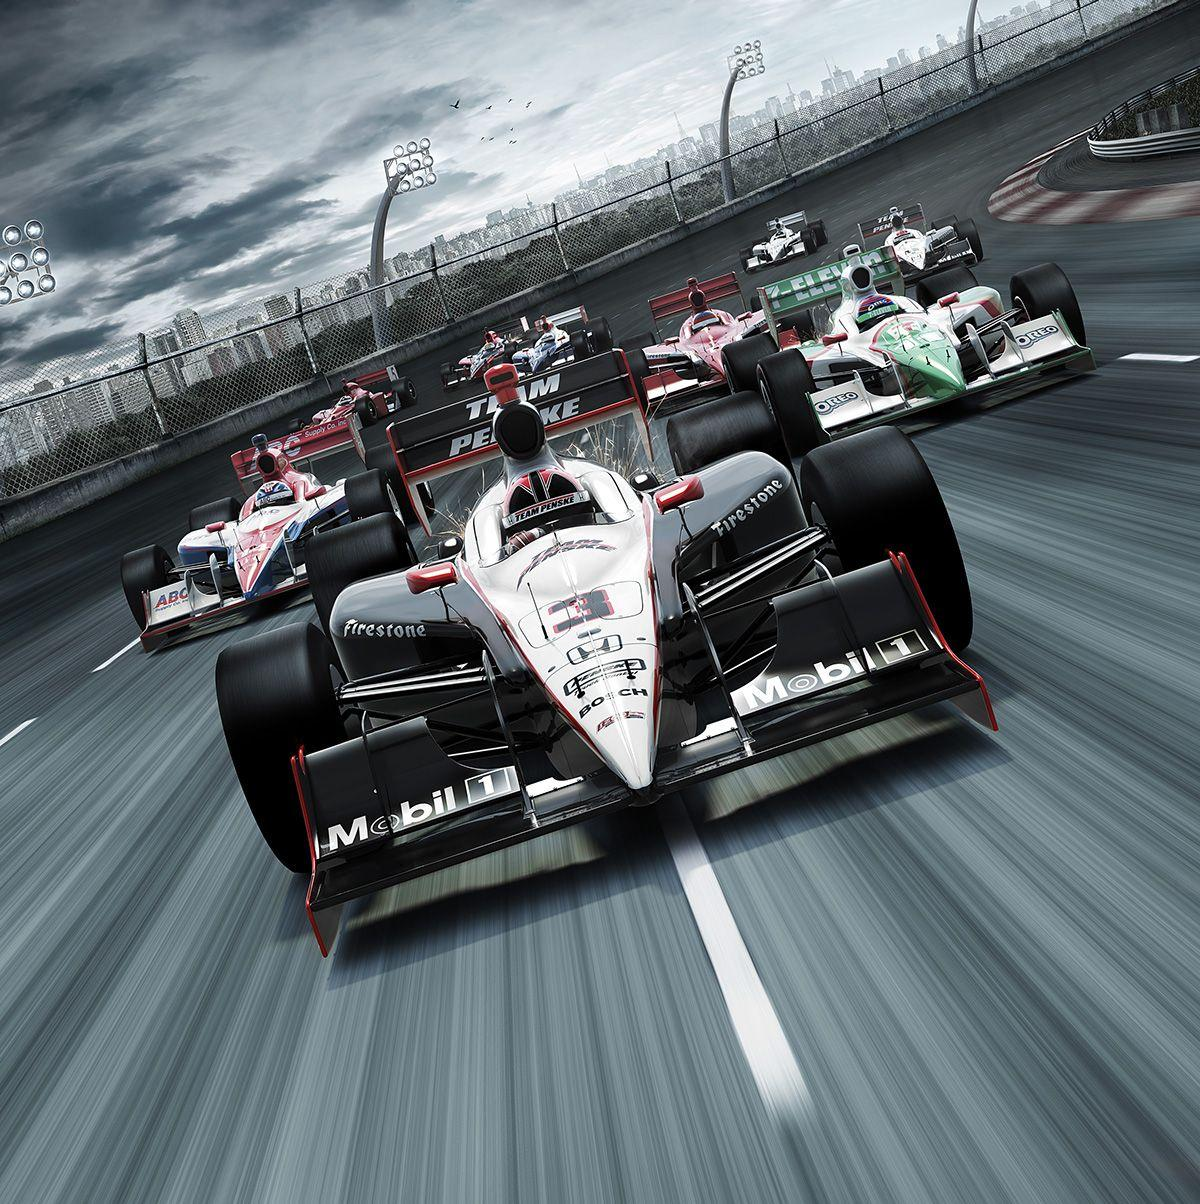 IndyCar Wallpapers - WallpaperPulse